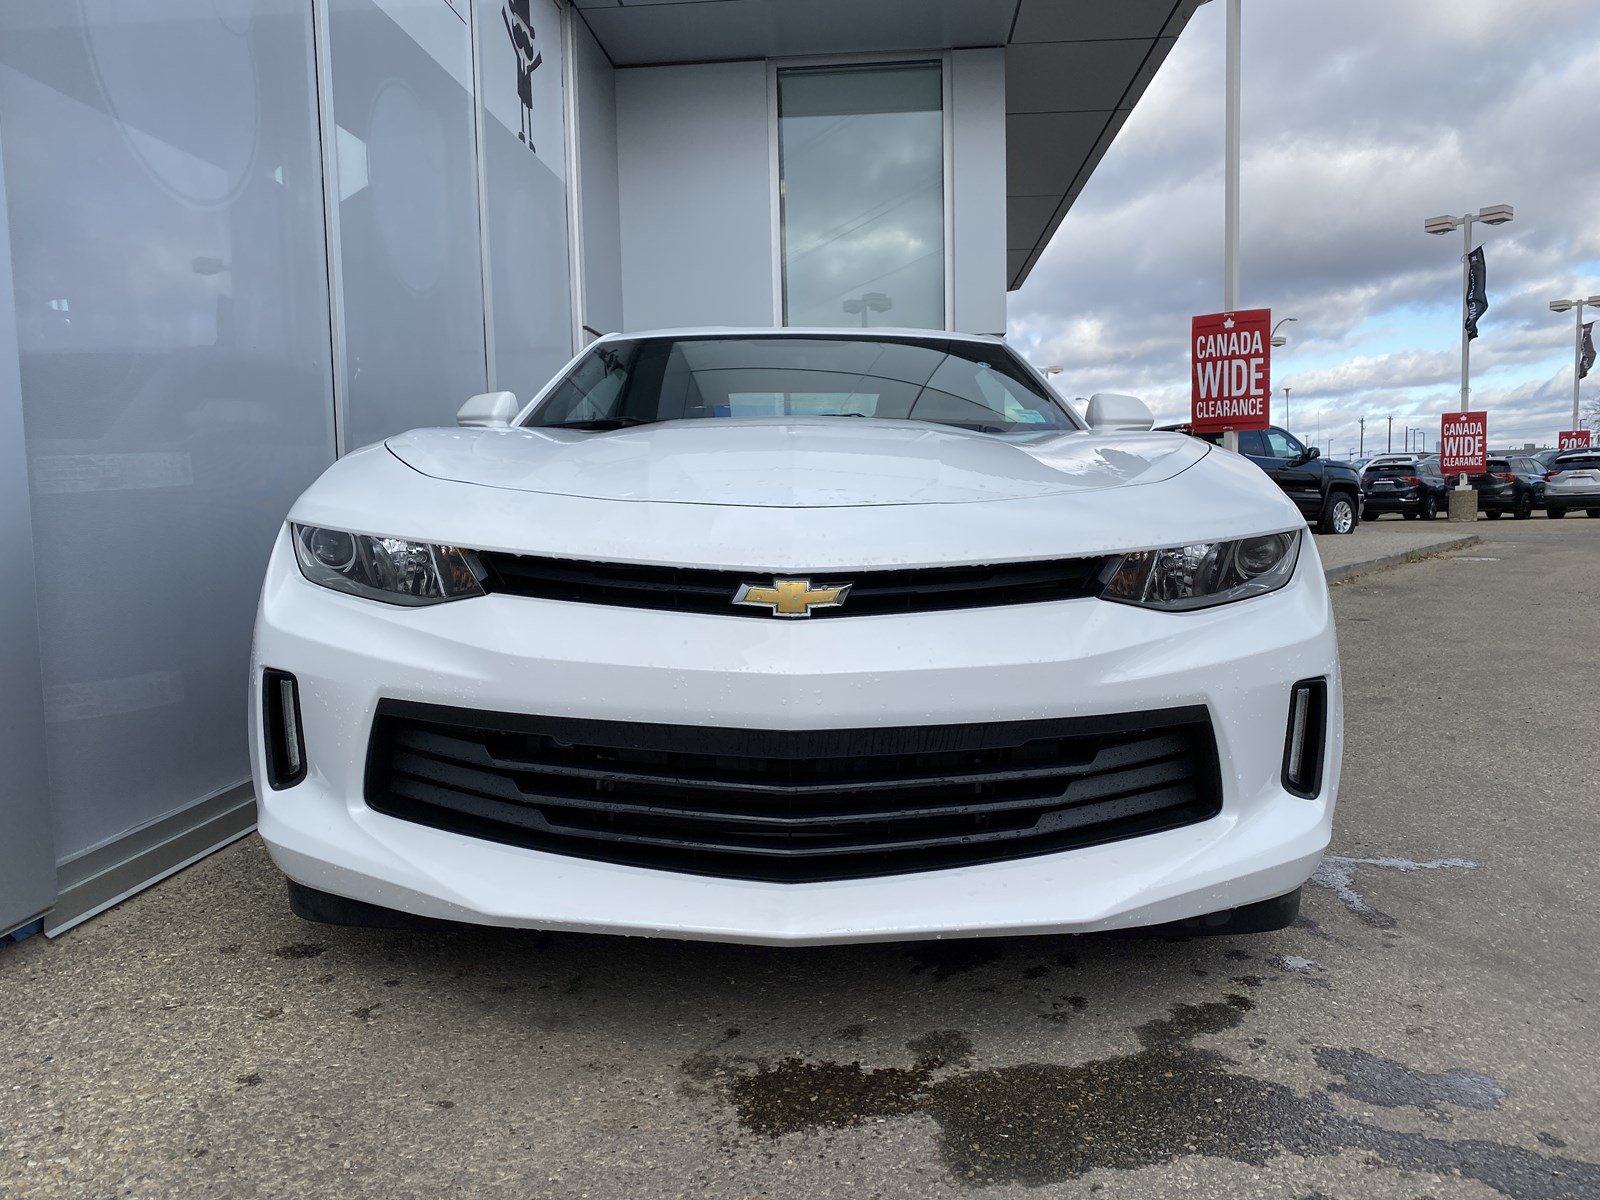 Certified Pre-Owned 2018 Chevrolet Camaro CLEARANCE SPECIAL TRIP FOR TWO TO VEGAS INCL.